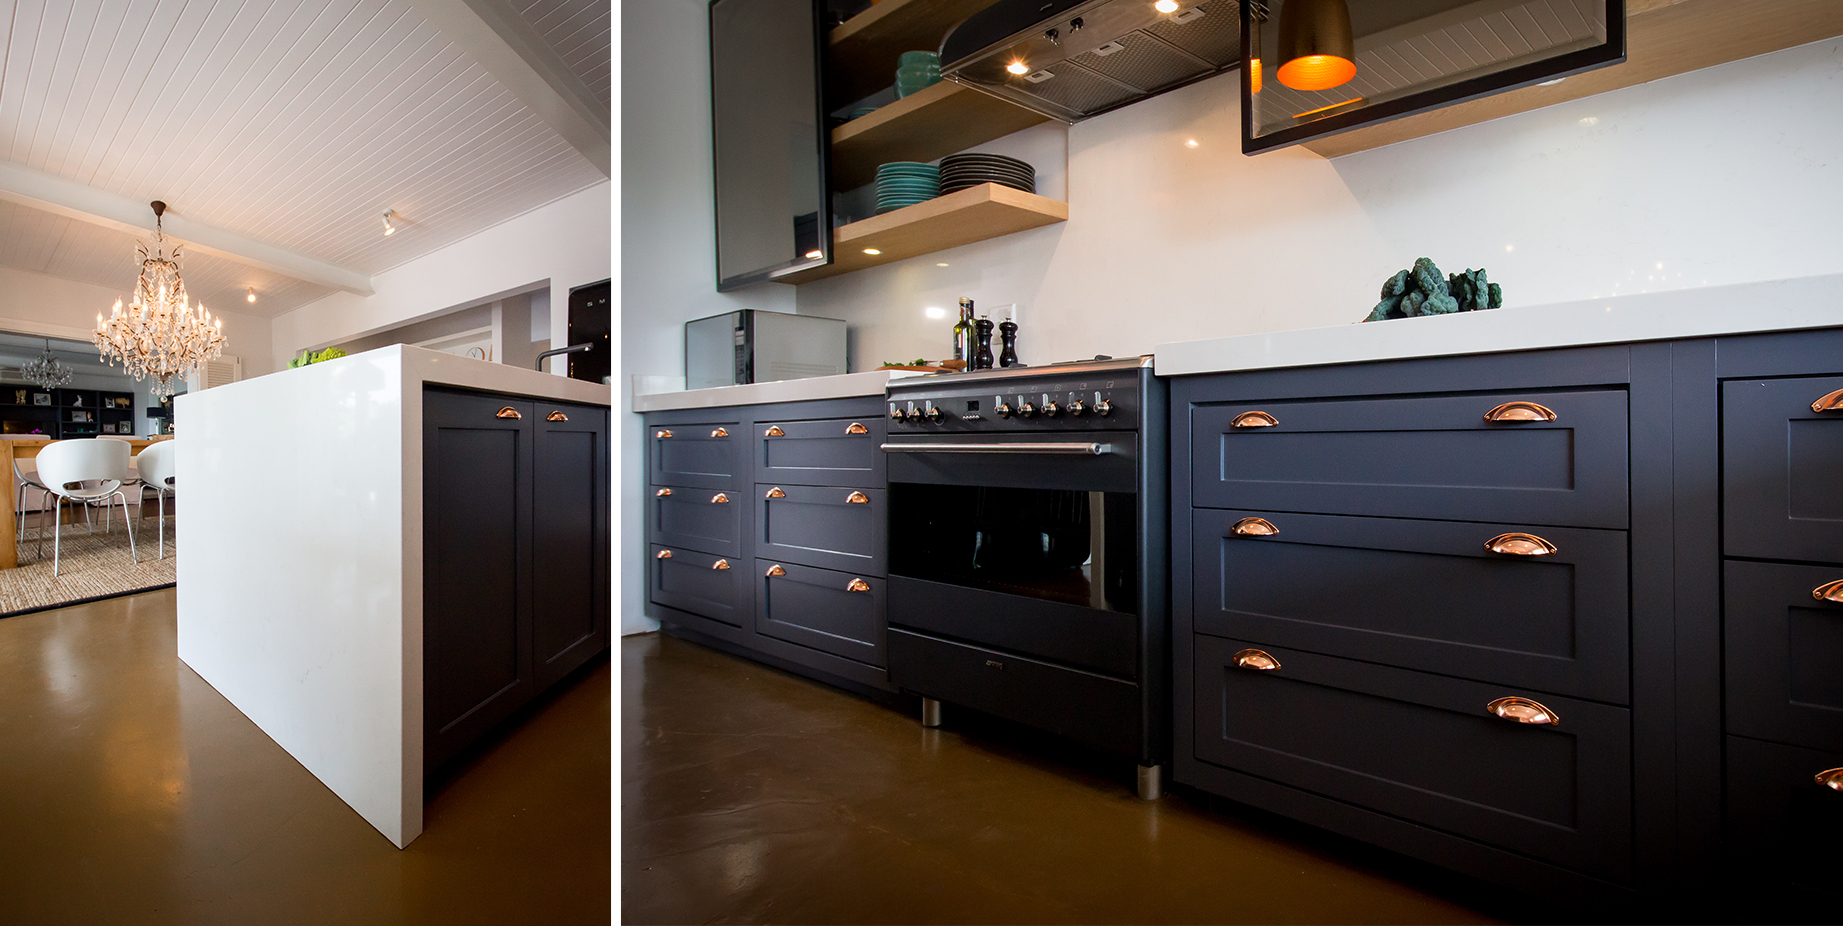 Incorporating drawers instead of cupboard doors for storage access was one of Kim's kitchen design highlights.